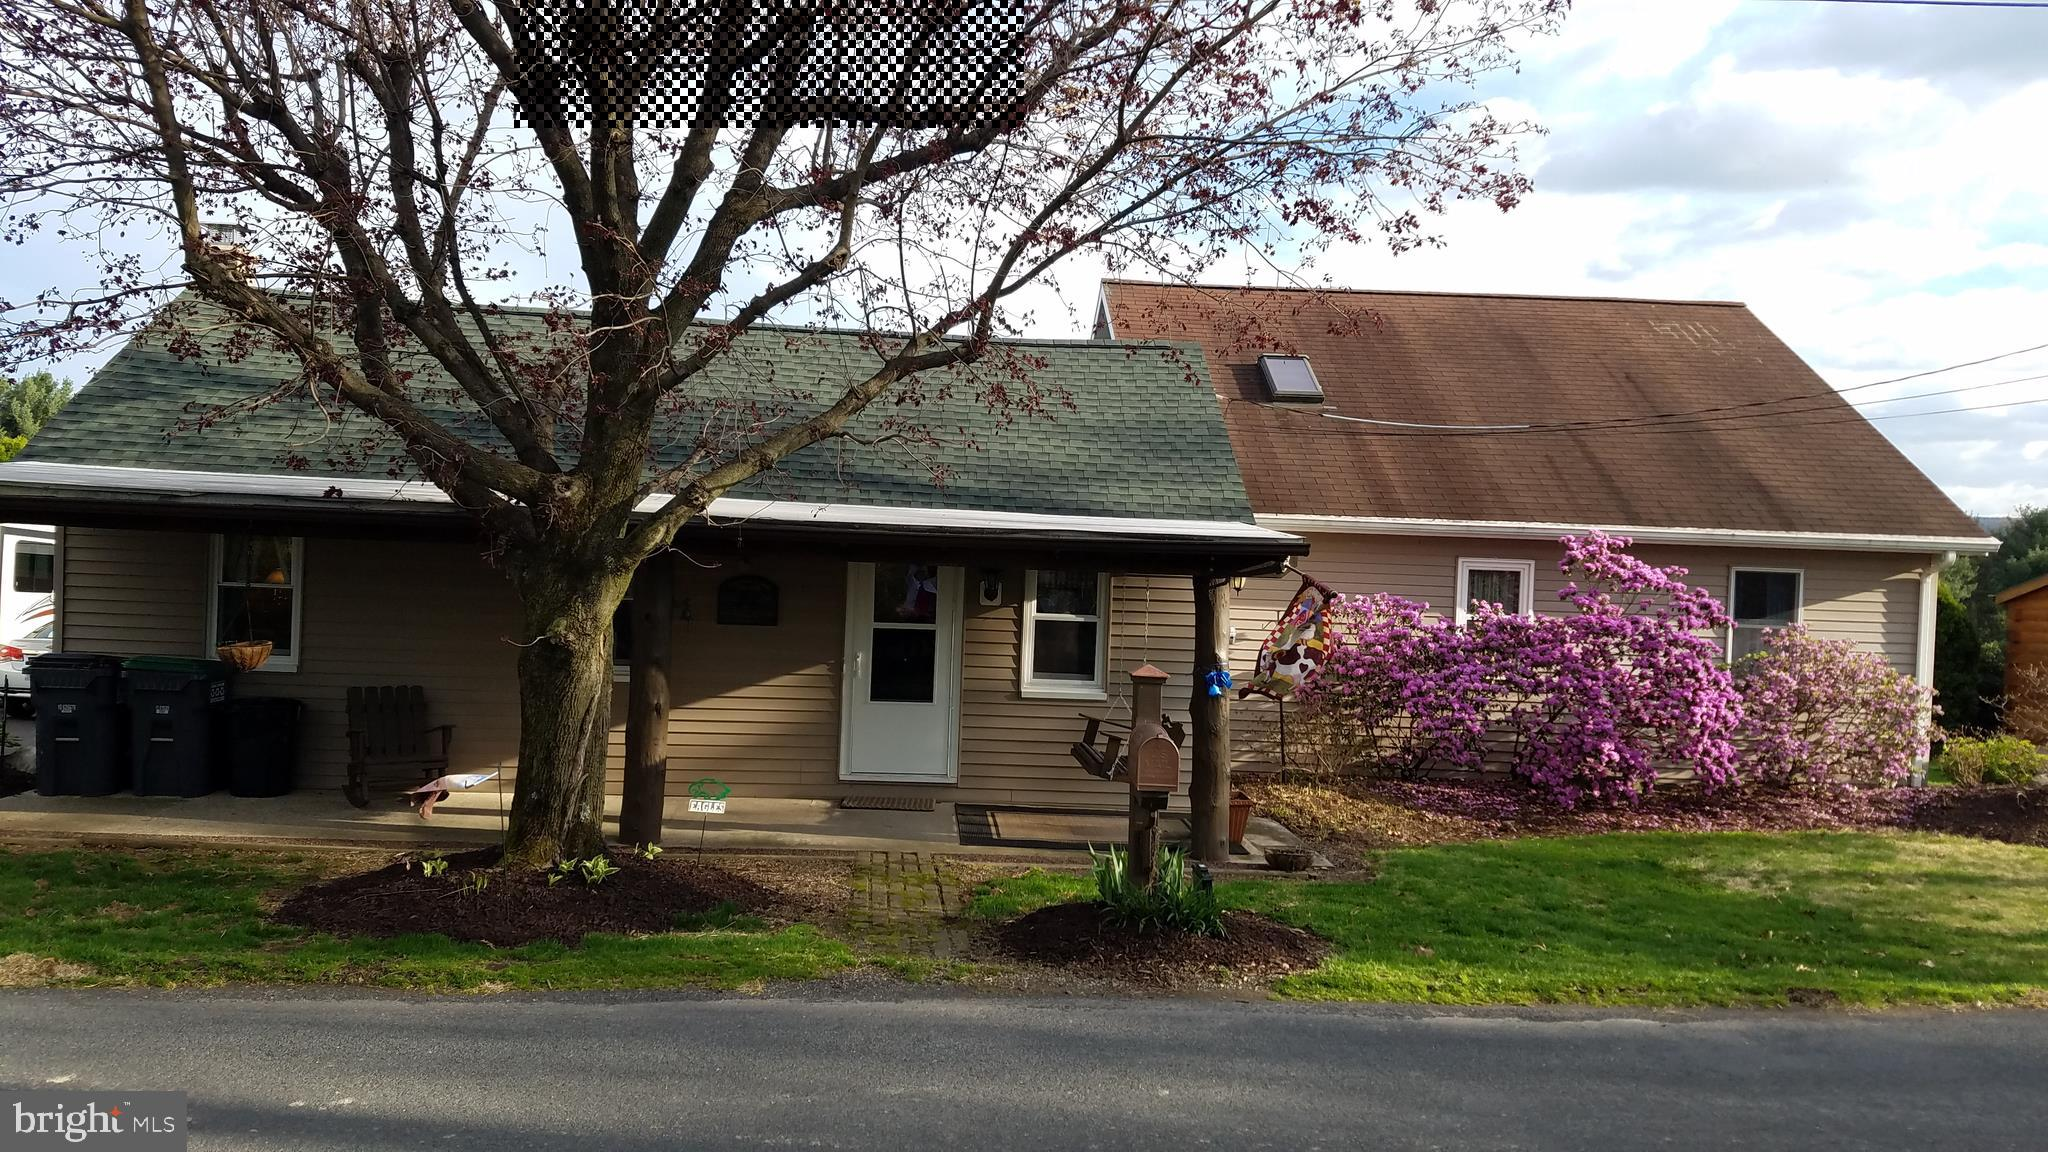 354 SUMMER HILL ROAD, SCHUYLKILL HAVEN, PA 17972